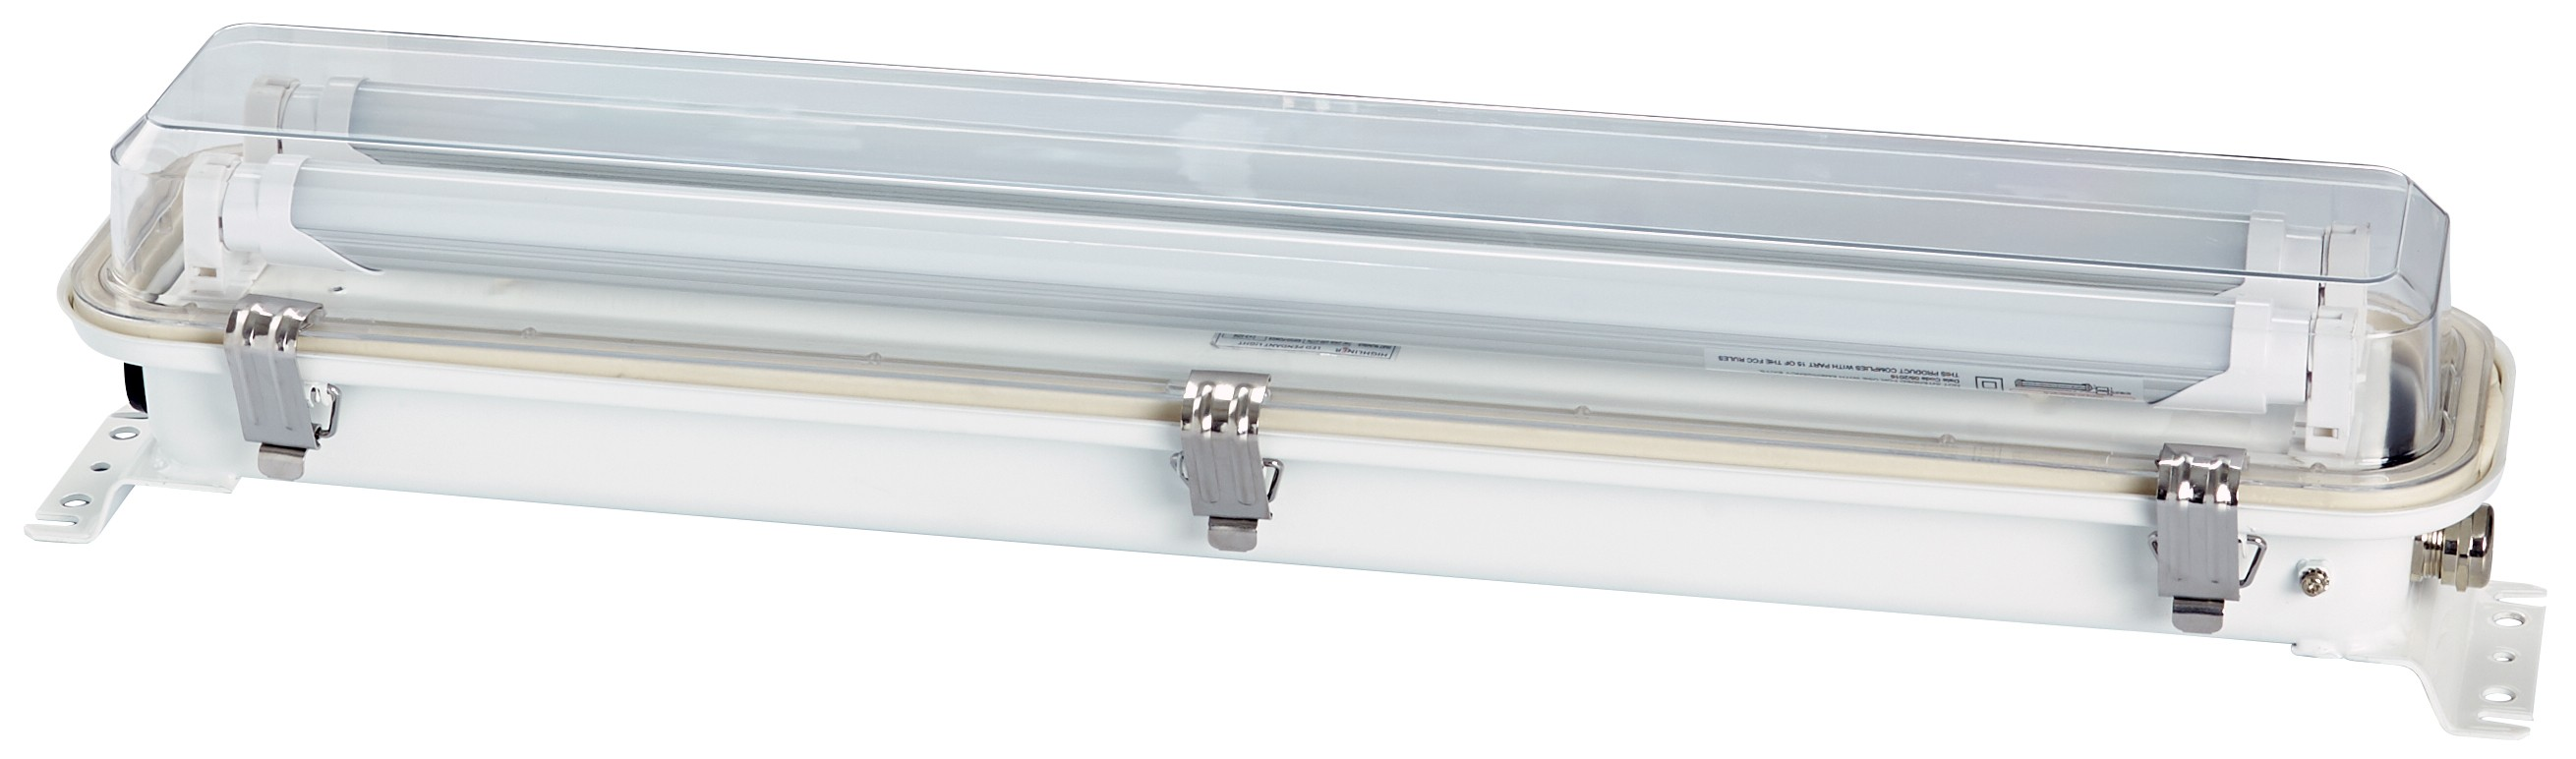 "Value 20W 24"" Vapor Tight Fixture"